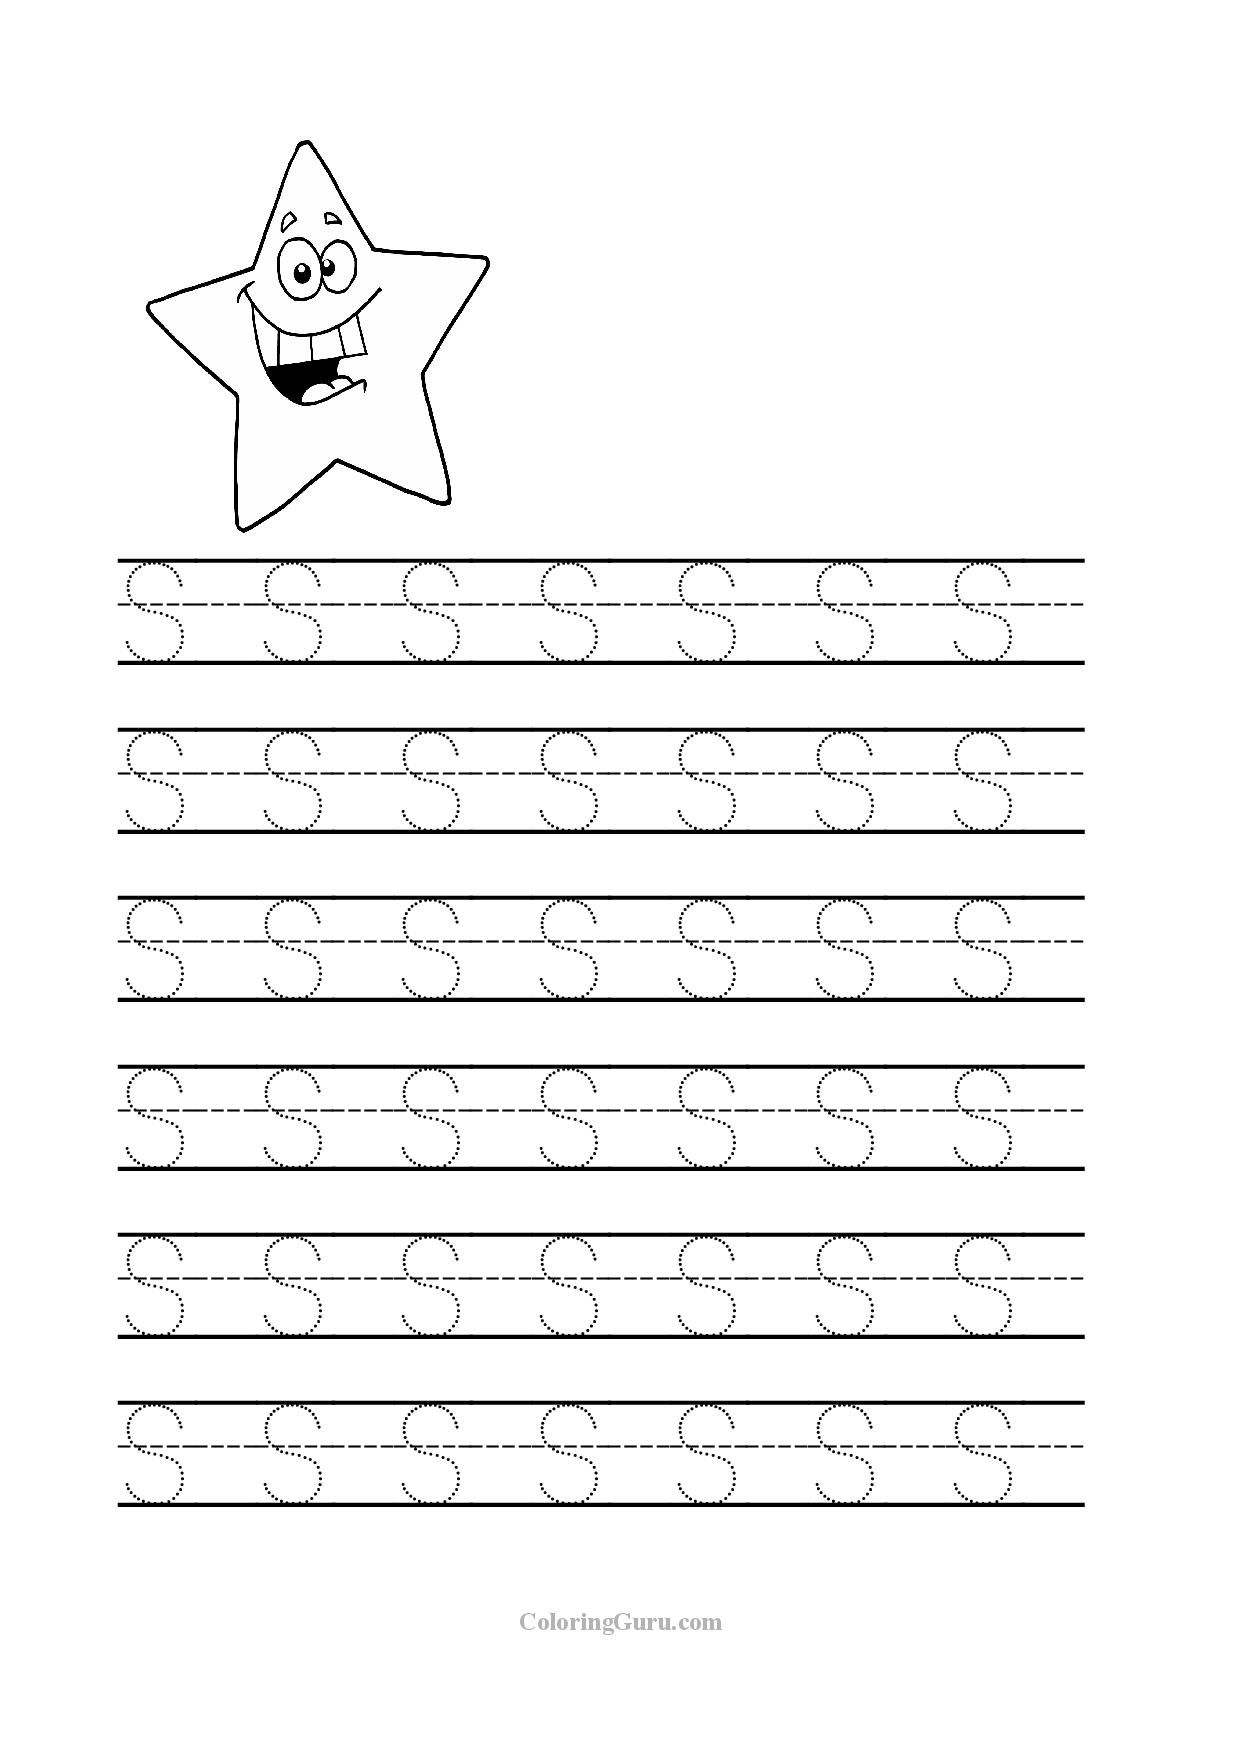 Free Printable Tracing Letter S Worksheets For Preschool regarding Free Printable Alphabet Tracing Letters